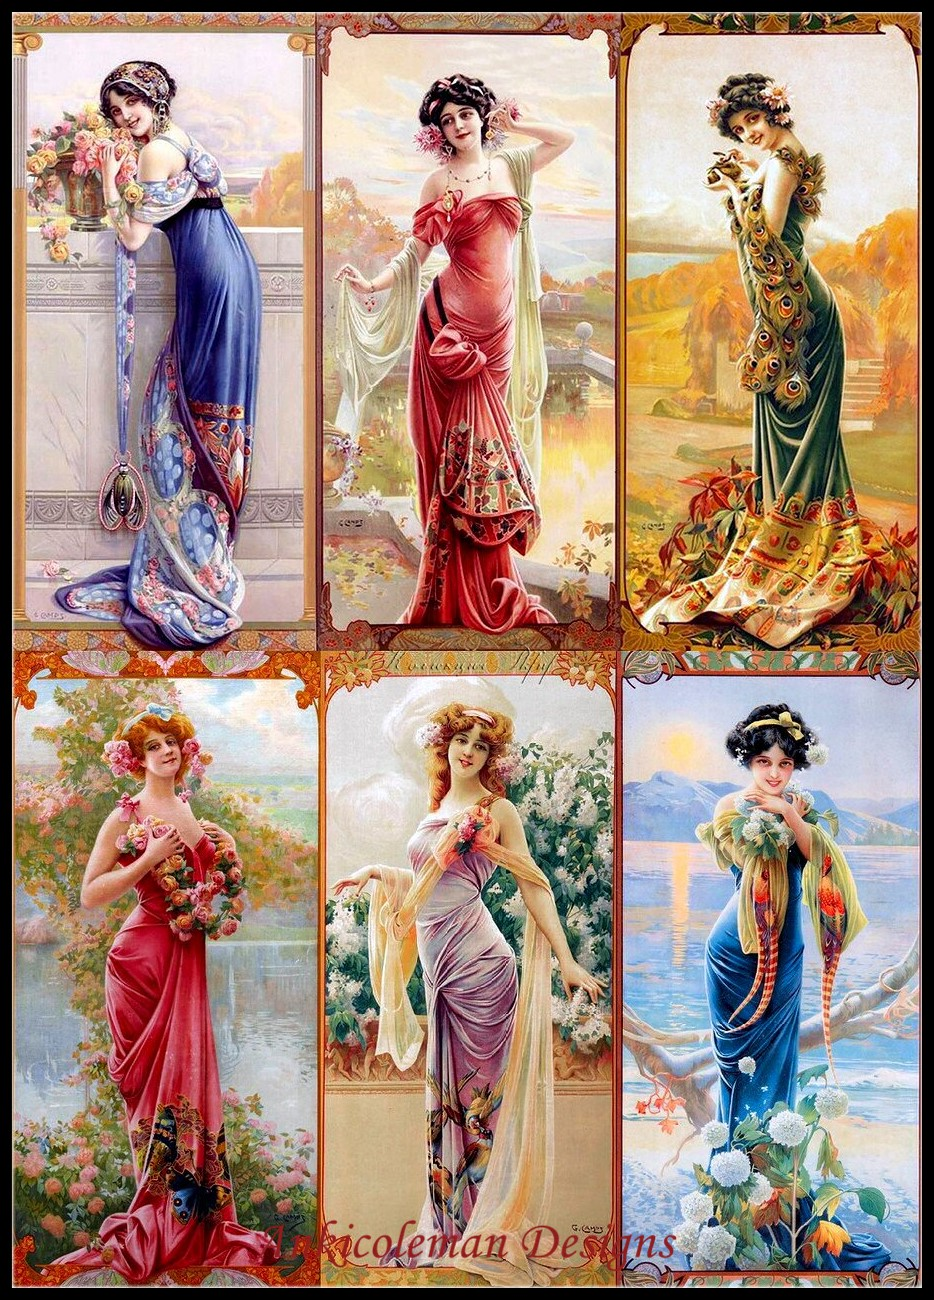 Needlework For Embroidery DIY French DMC High Quality - Counted Cross Stitch Kits 14 Ct Oil Painting - Six Ladies